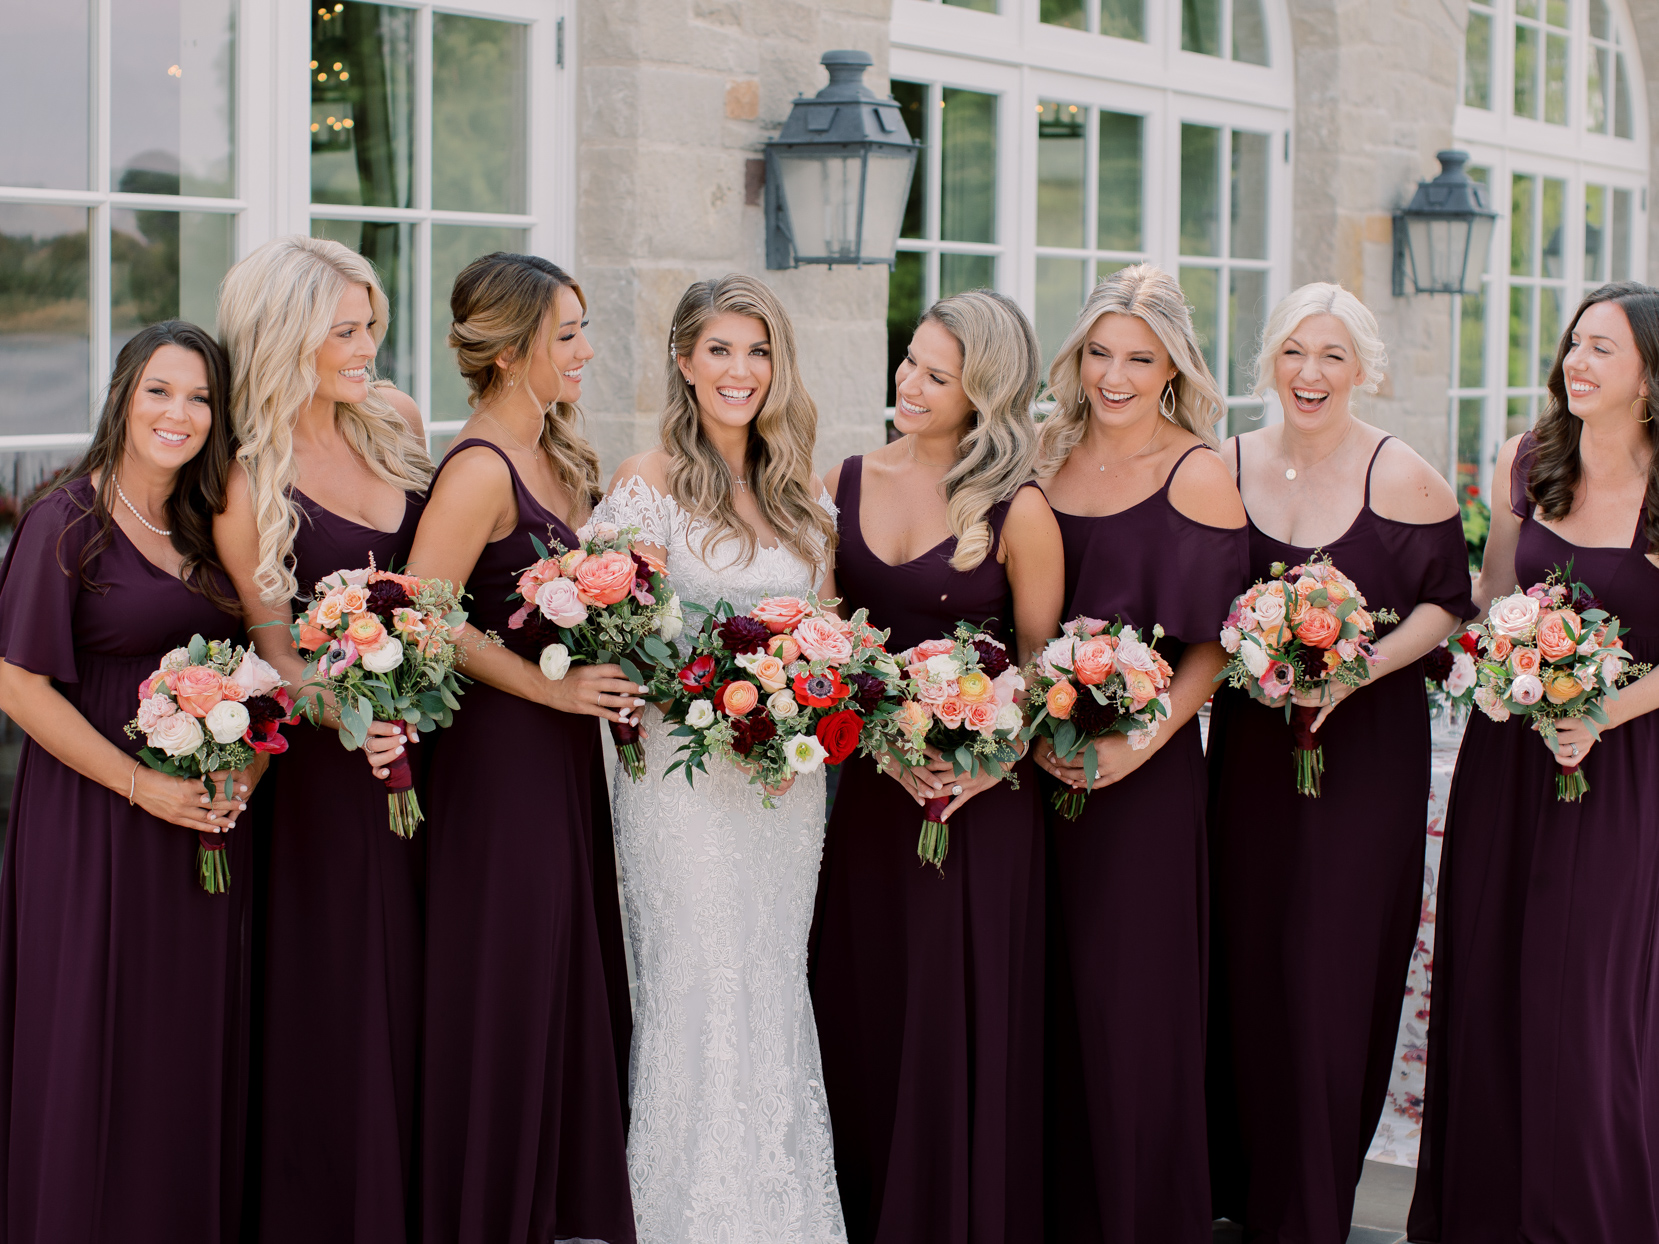 bride with bridesmaids in purple floor-length gowns